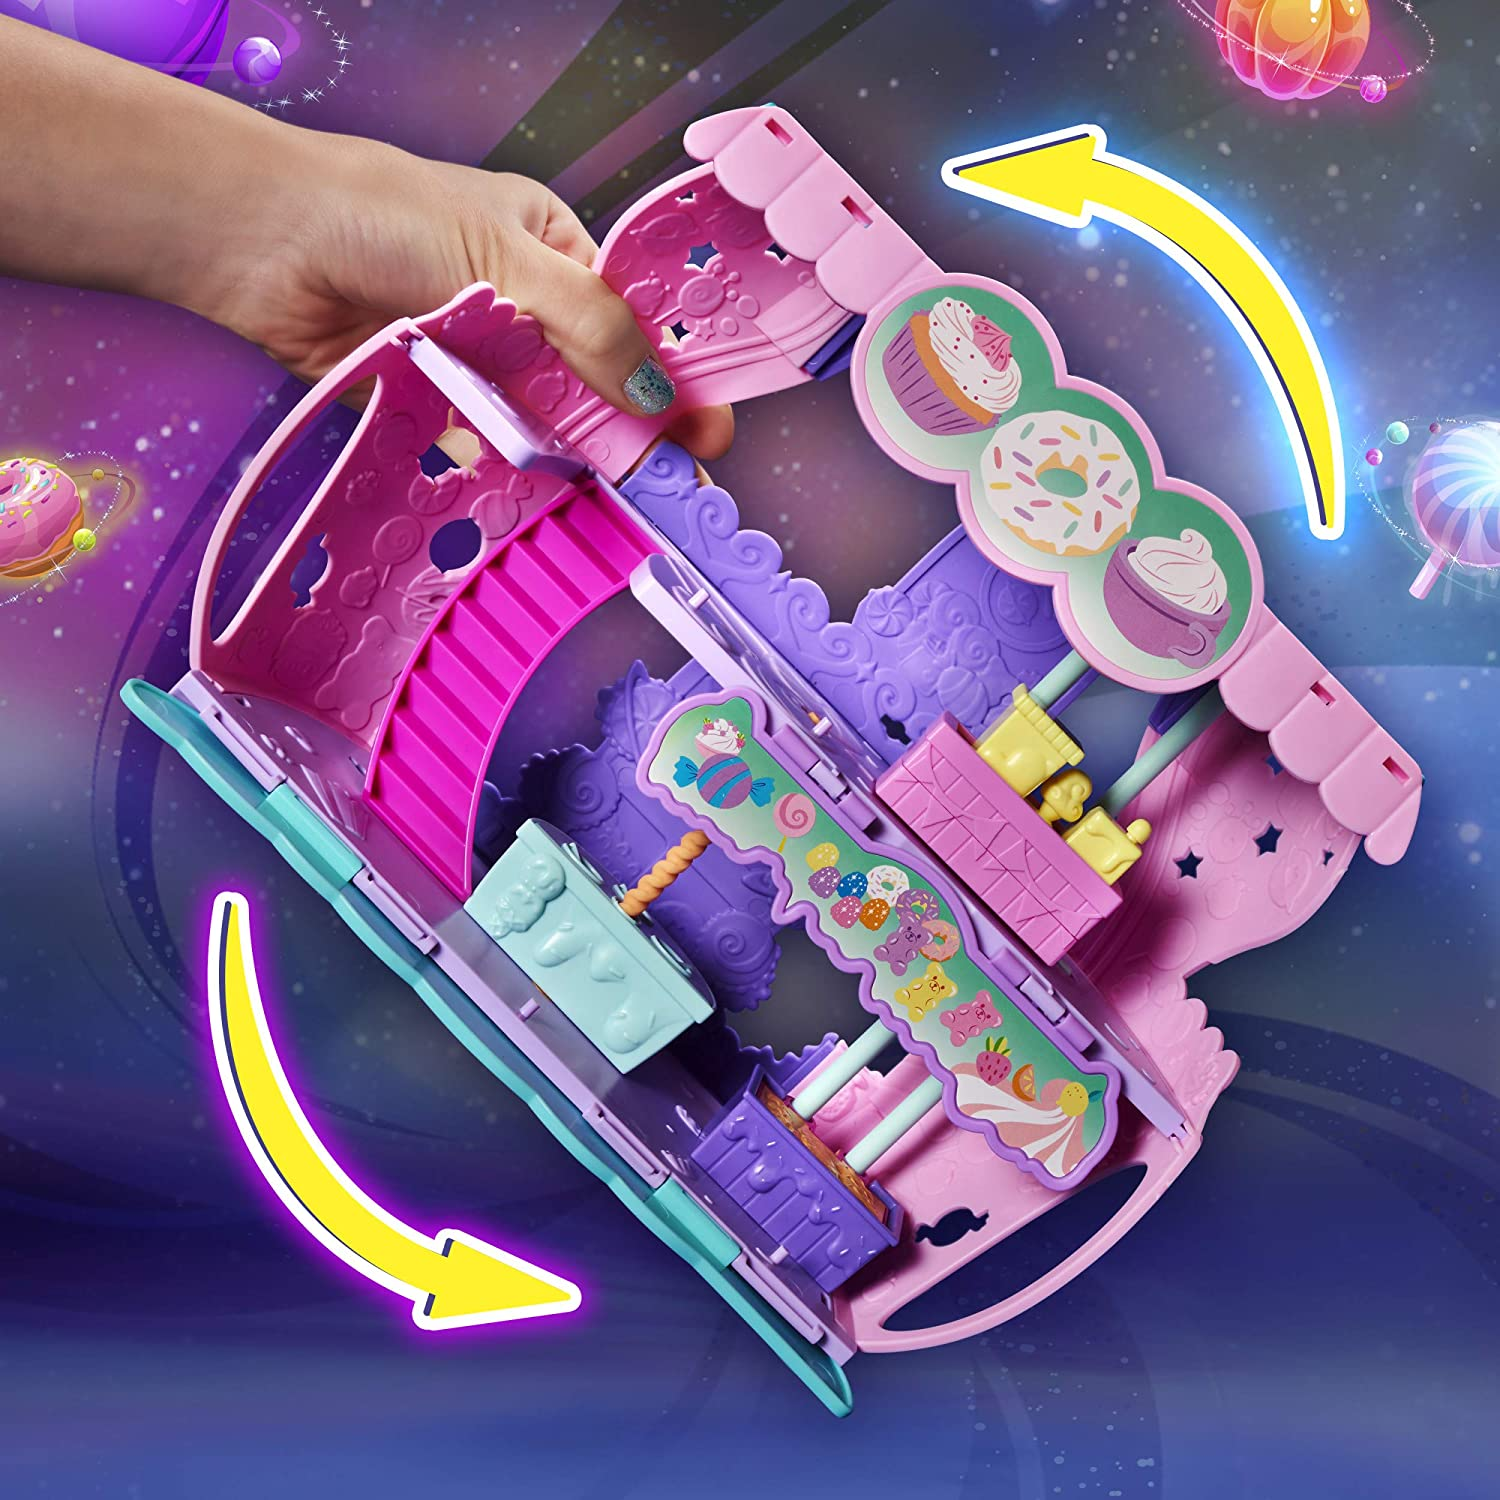 Hatchimals Colleggtibles Cosmic Candy Shop 2 In 1 Playset With Exclusive Pixie For Kids Aged 5 And Up Toys Games Amazon Com